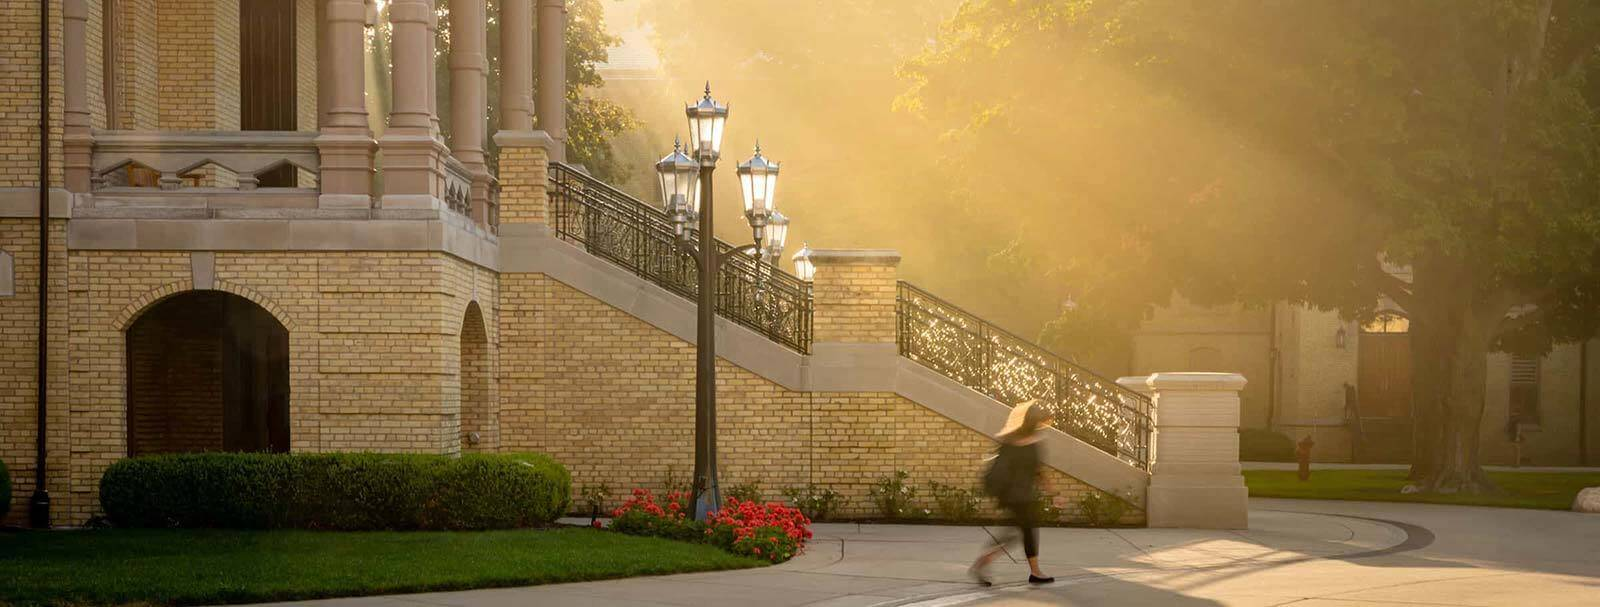 A person walks behind the Main Building steps during a misty sunrise.